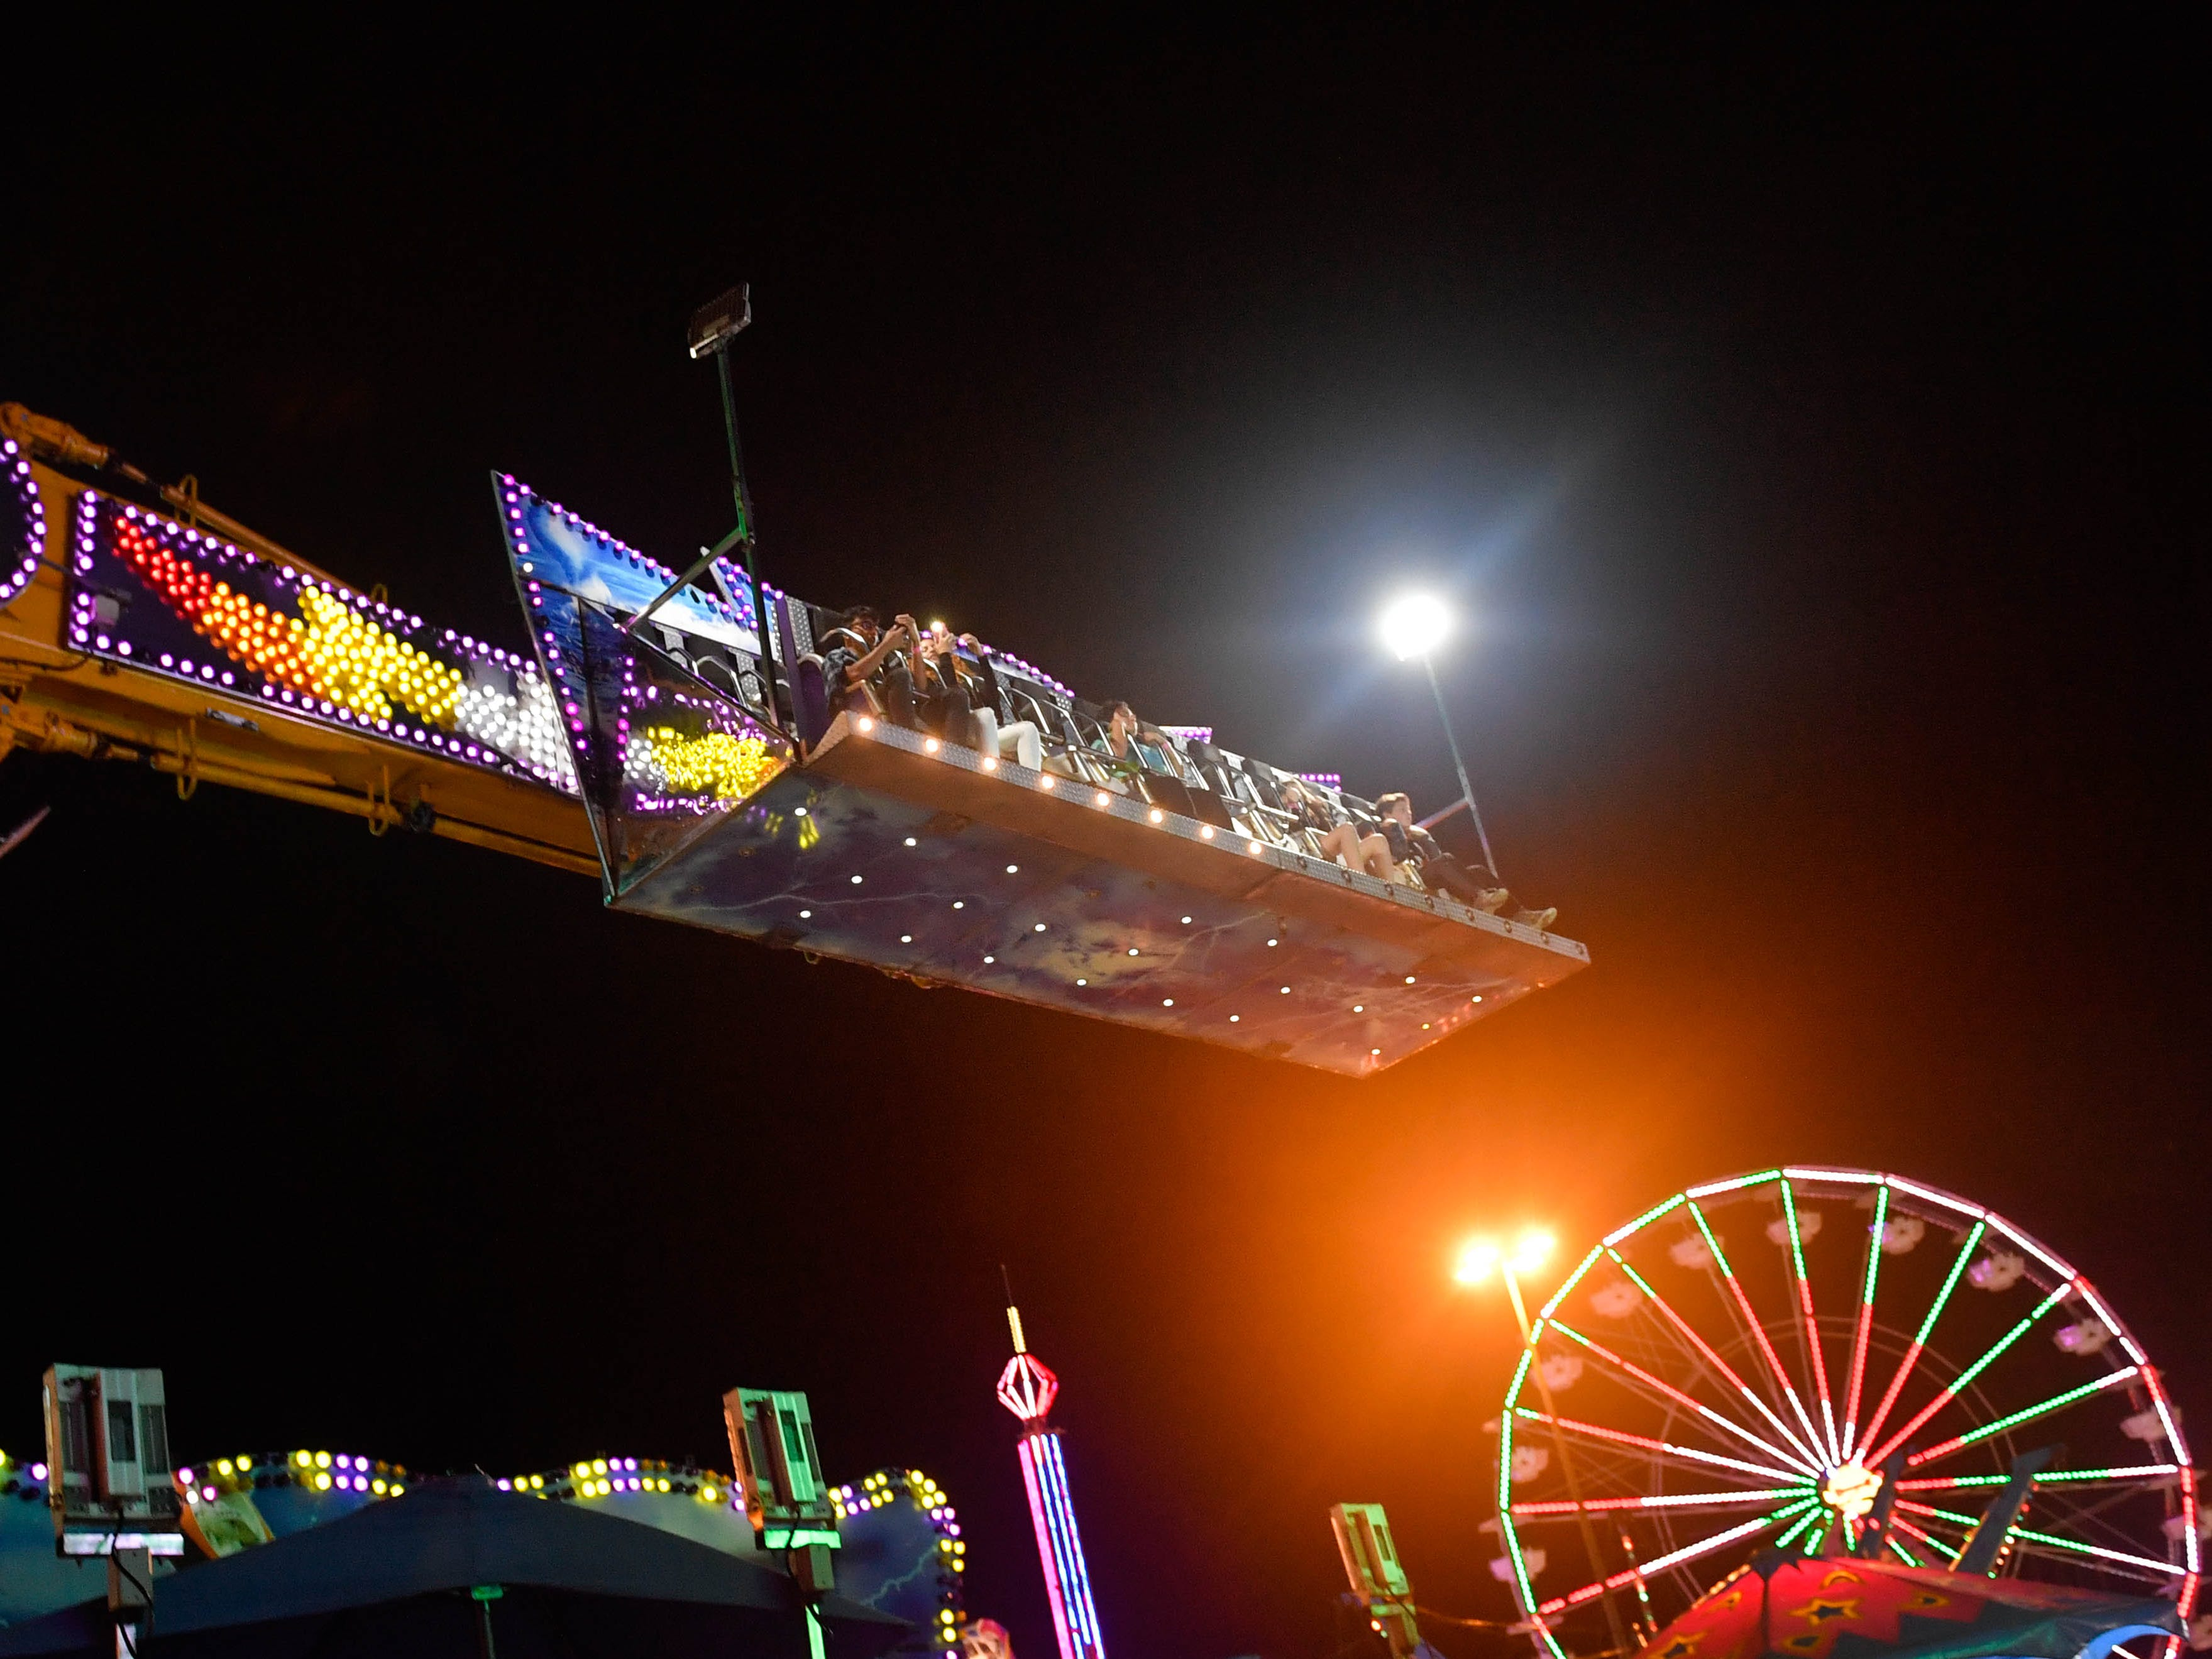 As the Typhoon swings back and forth, riders experience a feeling of weightlessness at the York Fair, Tuesday night, September 11, 2018.